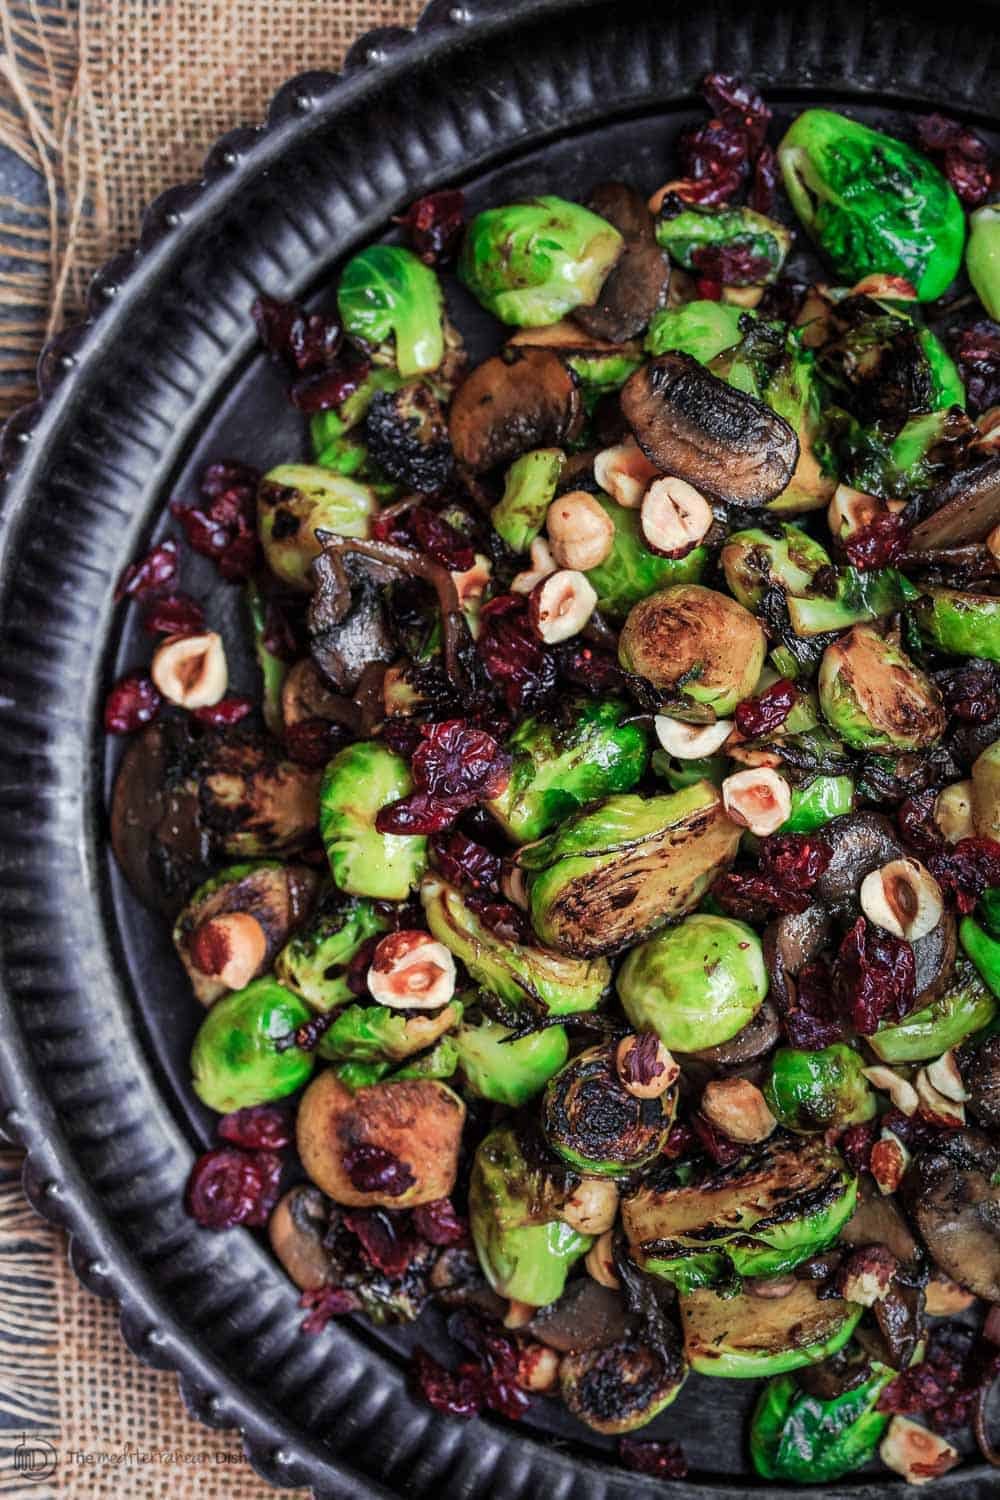 Olive Oil Fried Brussels Sprouts with Mushrooms and Cranberries